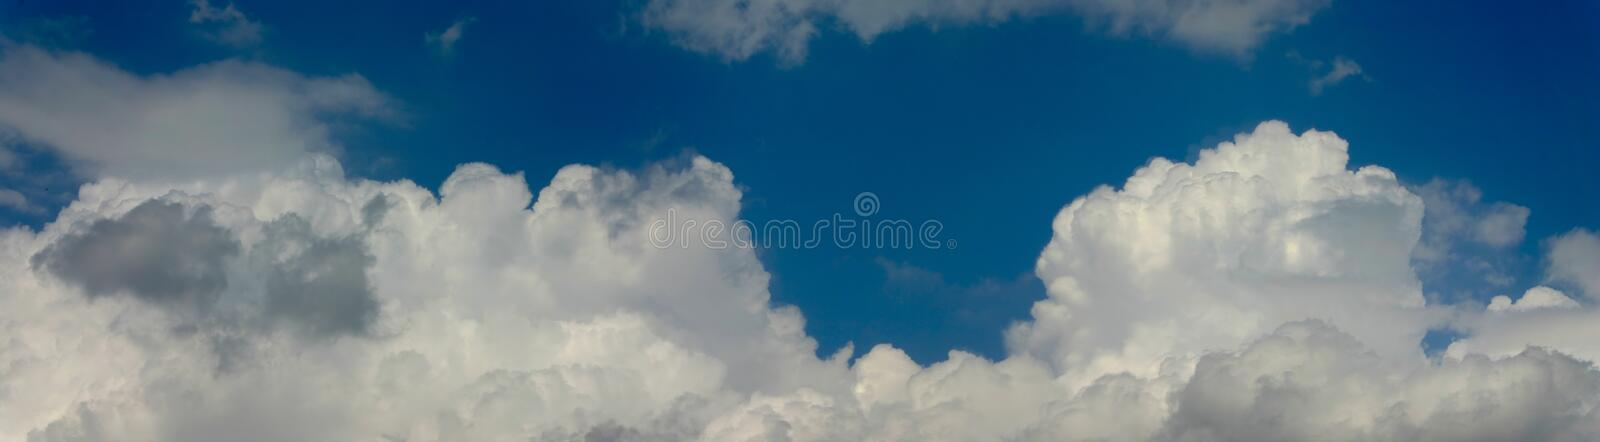 Download Cloudy sky panorama stock image. Image of gloomy, background - 245041